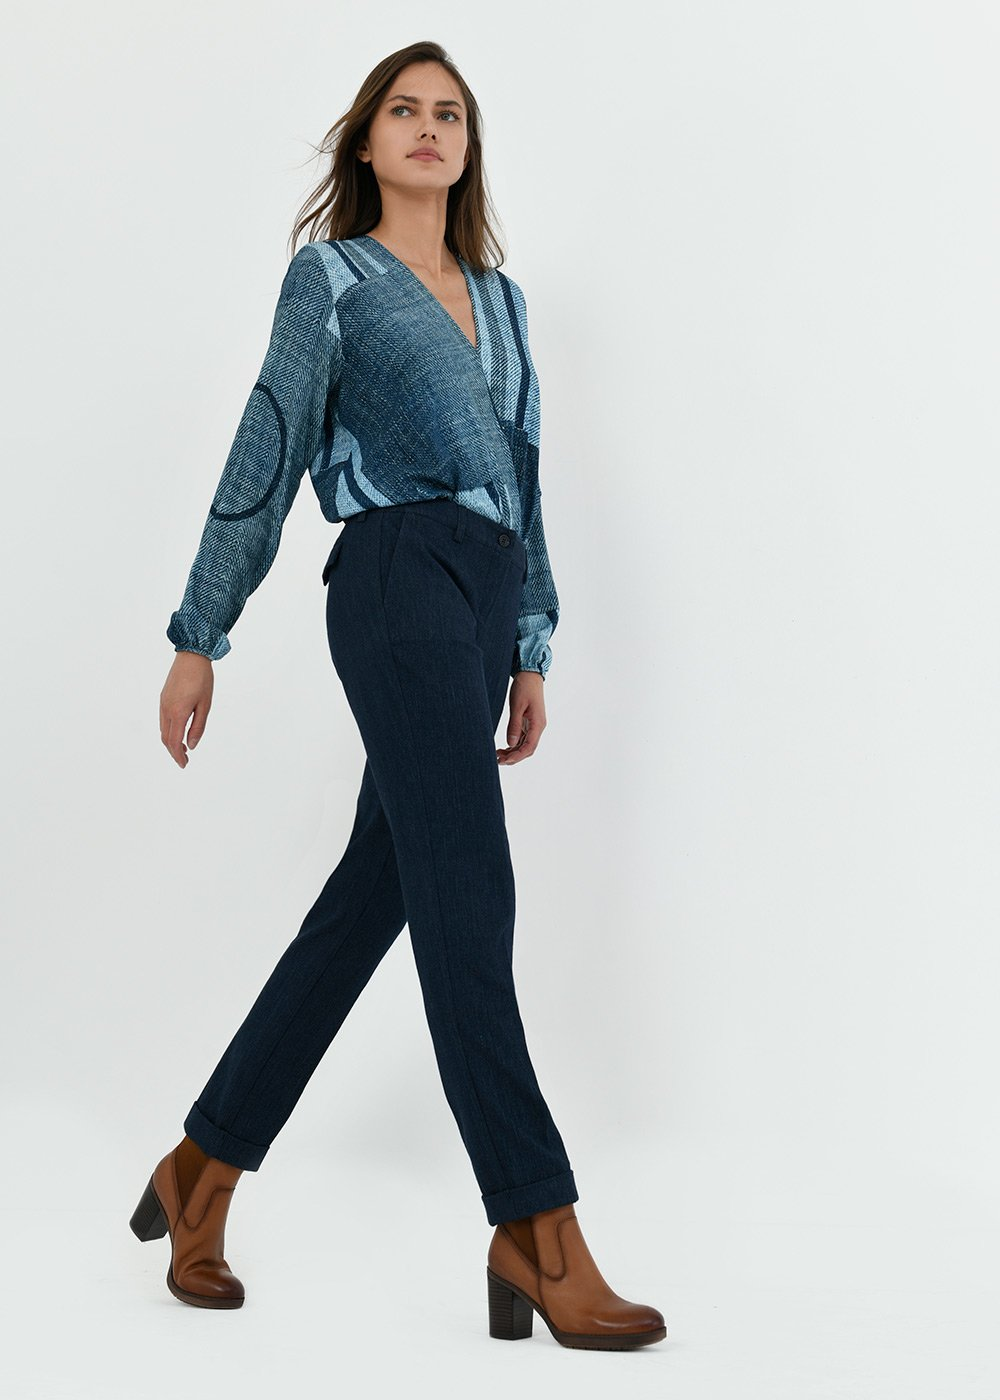 Pantalone Bella effetto denim - Blue - Donna